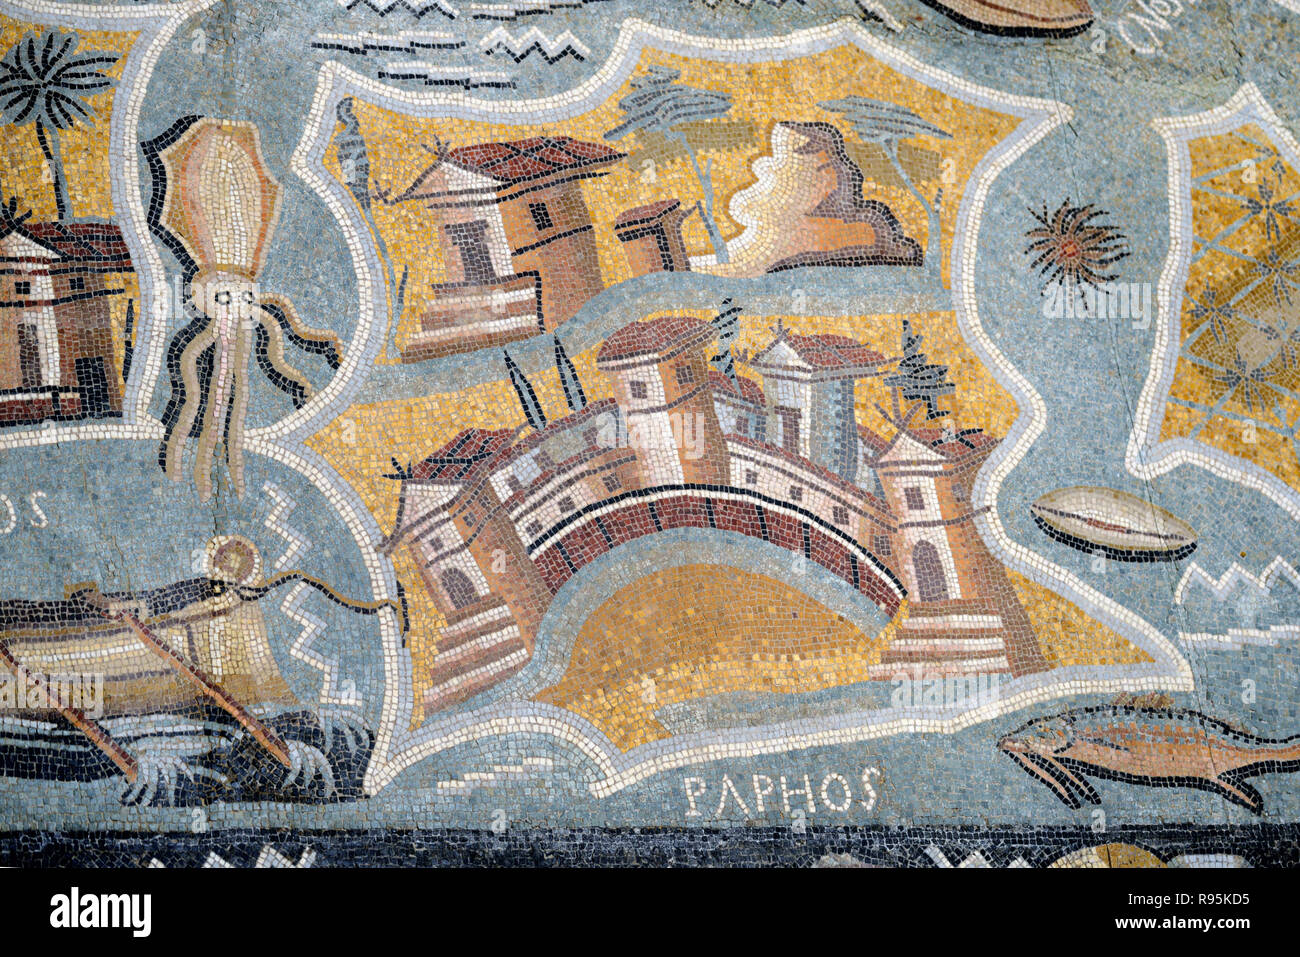 Roman Floor Mosaic (c3rd-c4th) of Paphos and Map or Plan of Cyprus from the Ancient Roman City of Ammaedara Haidra Tunisia - Stock Image